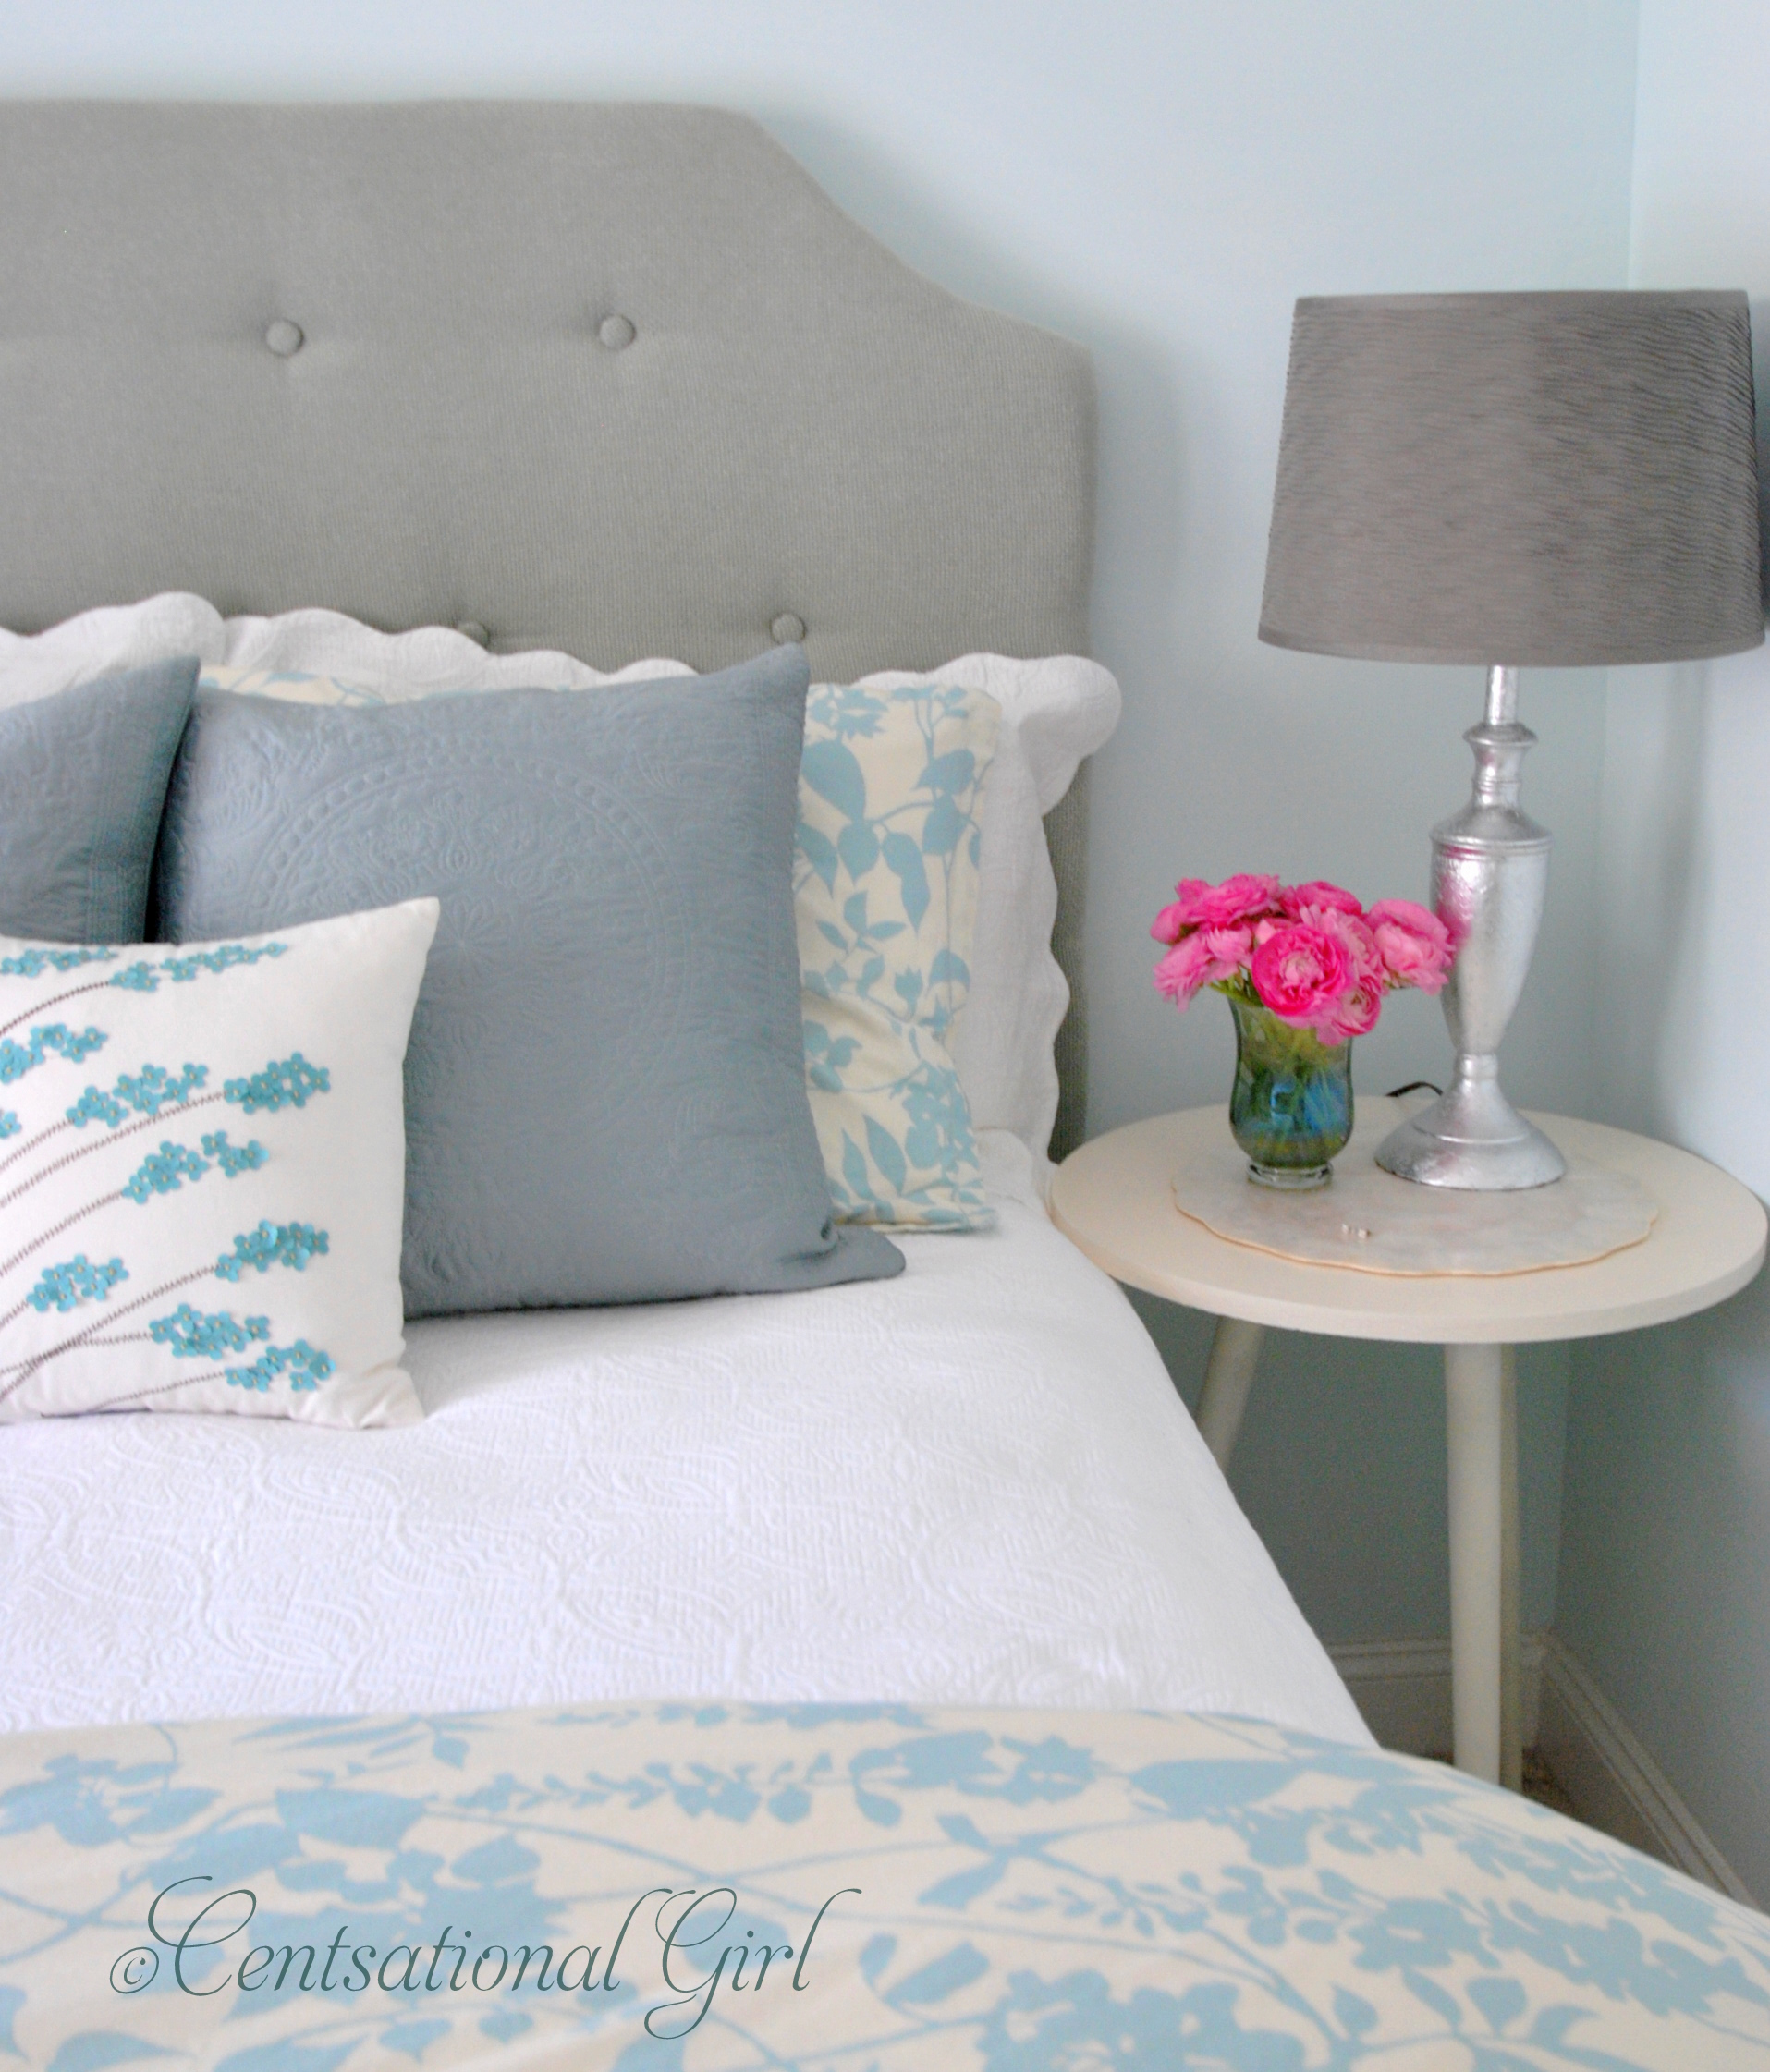 Charming Upholstered Headboards In Gainsboro Matched With White Bedlinen Plus White Nightstand And Table Standing Lamp For Bedroom Decor Ideas